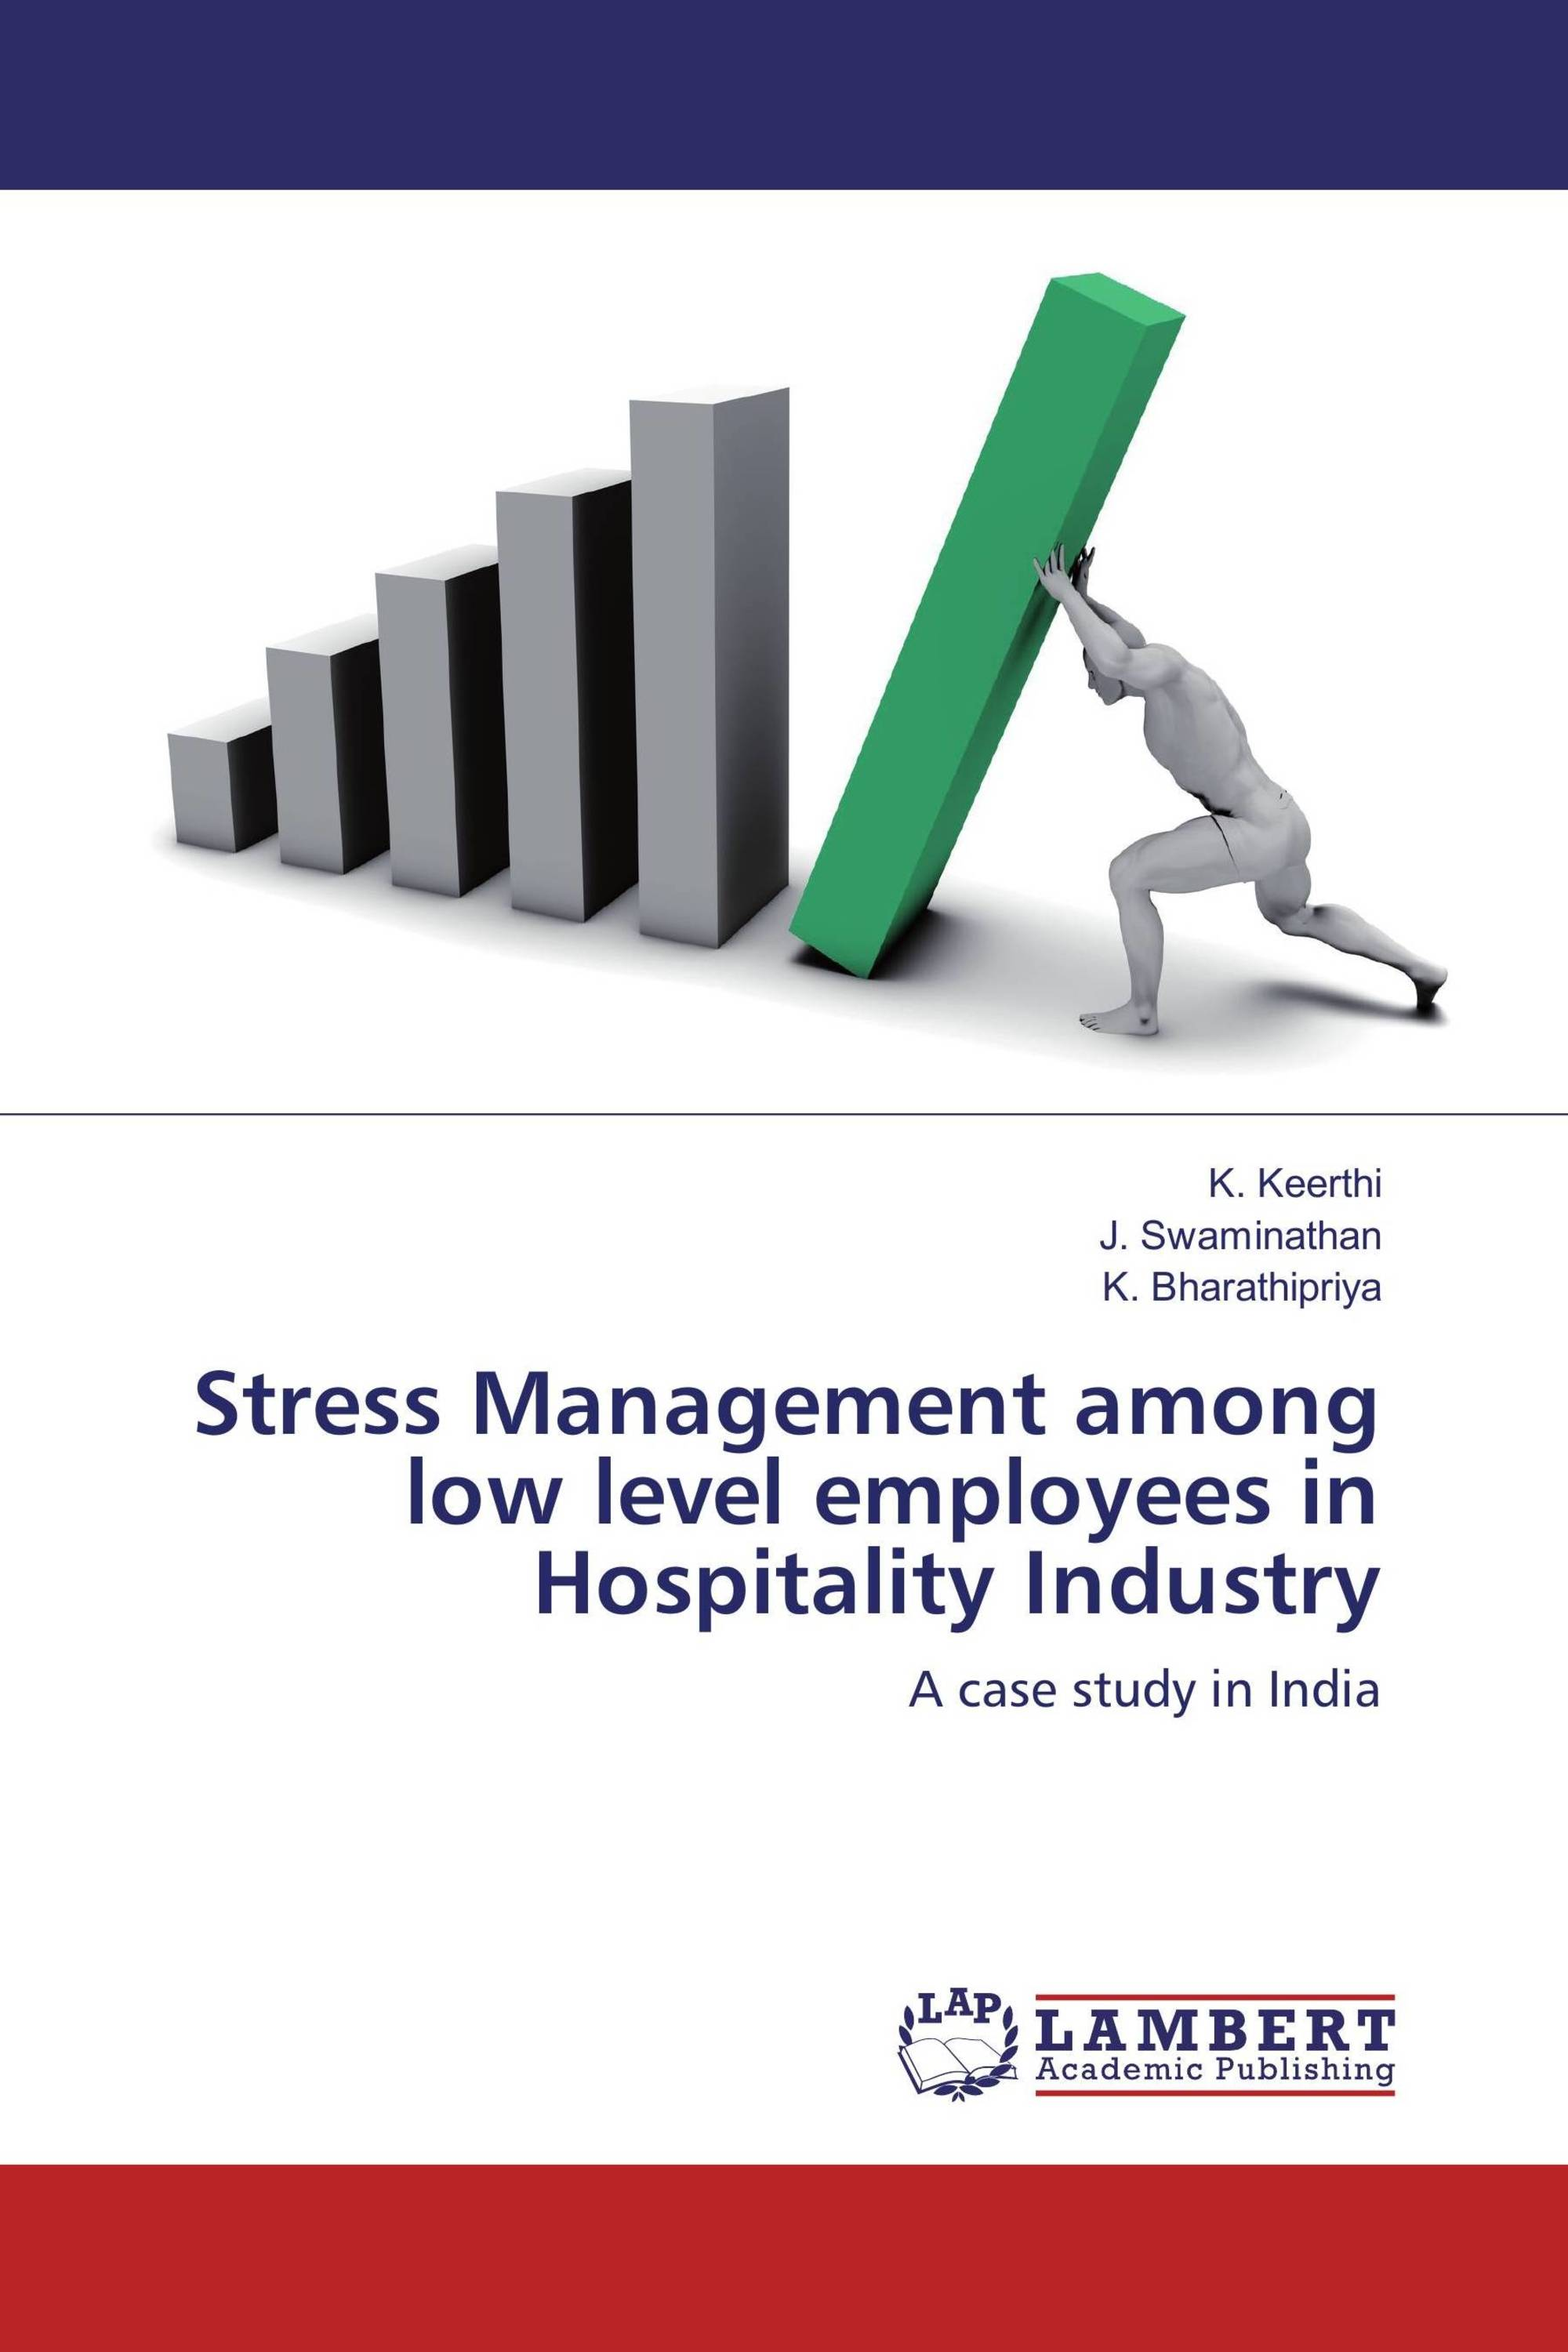 teamwork case study hospitality industry Business case studies by industry - hospitality below is a list of business case studies business case studies from companies within the hospitality sector of industry.